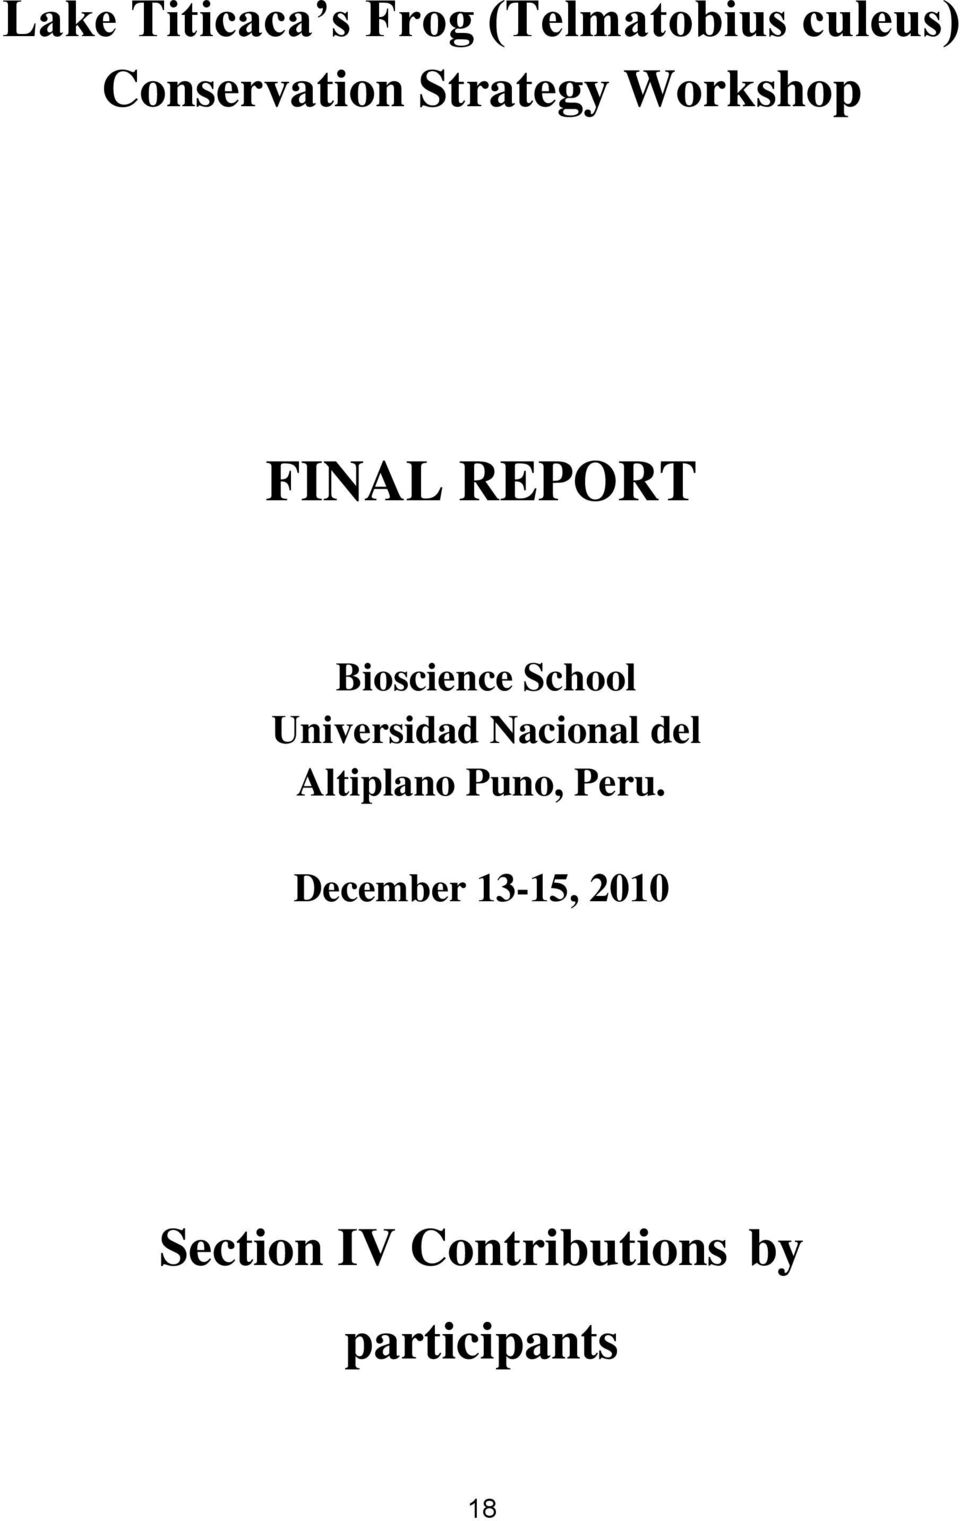 Bioscience School Universidad Nacional del Altiplano